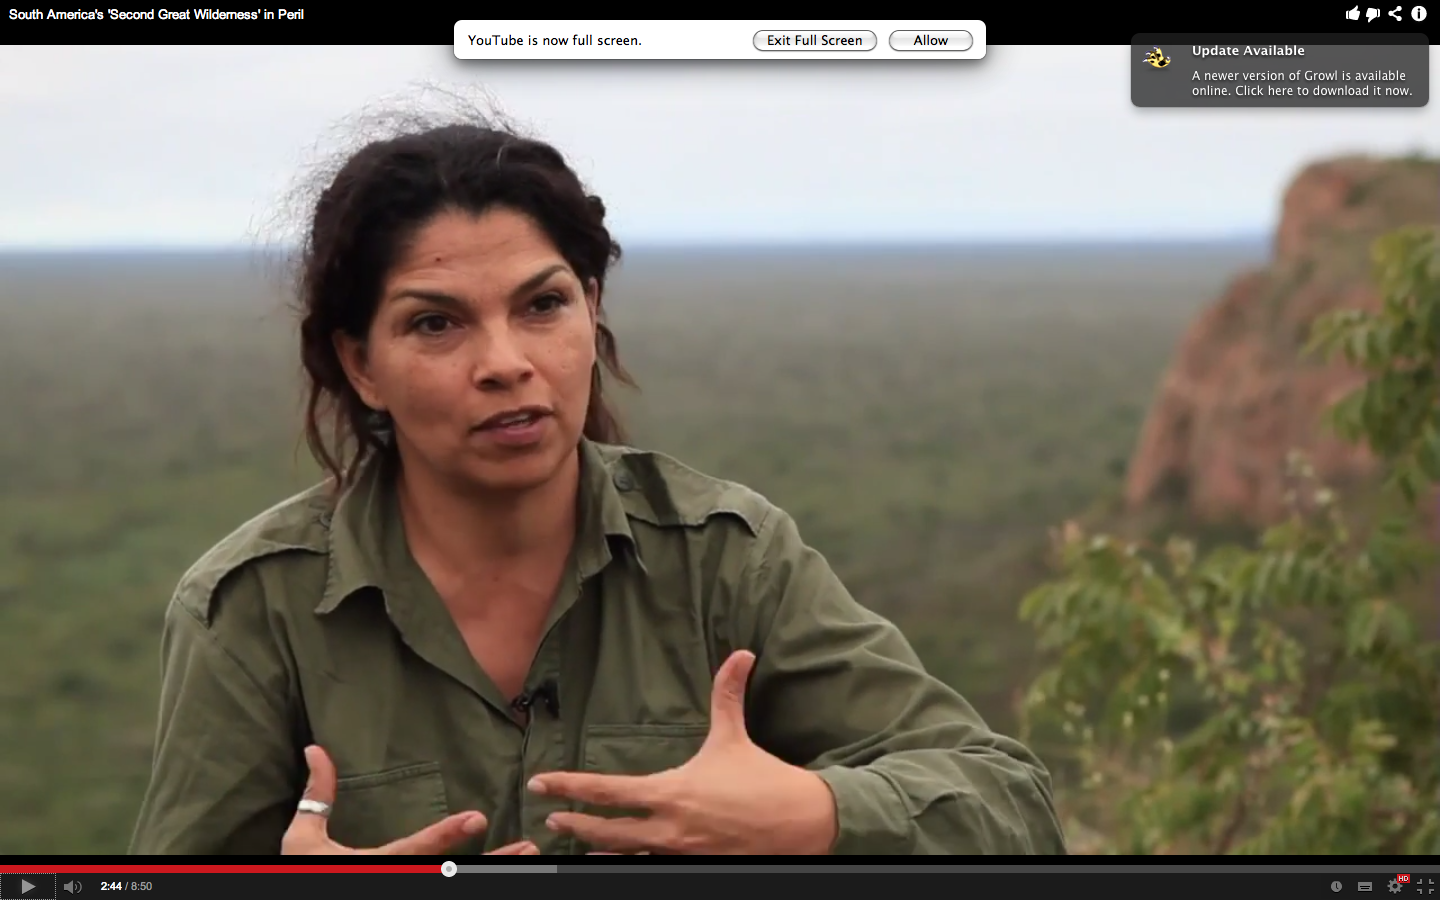 The woman saving South America's 2nd wilderness